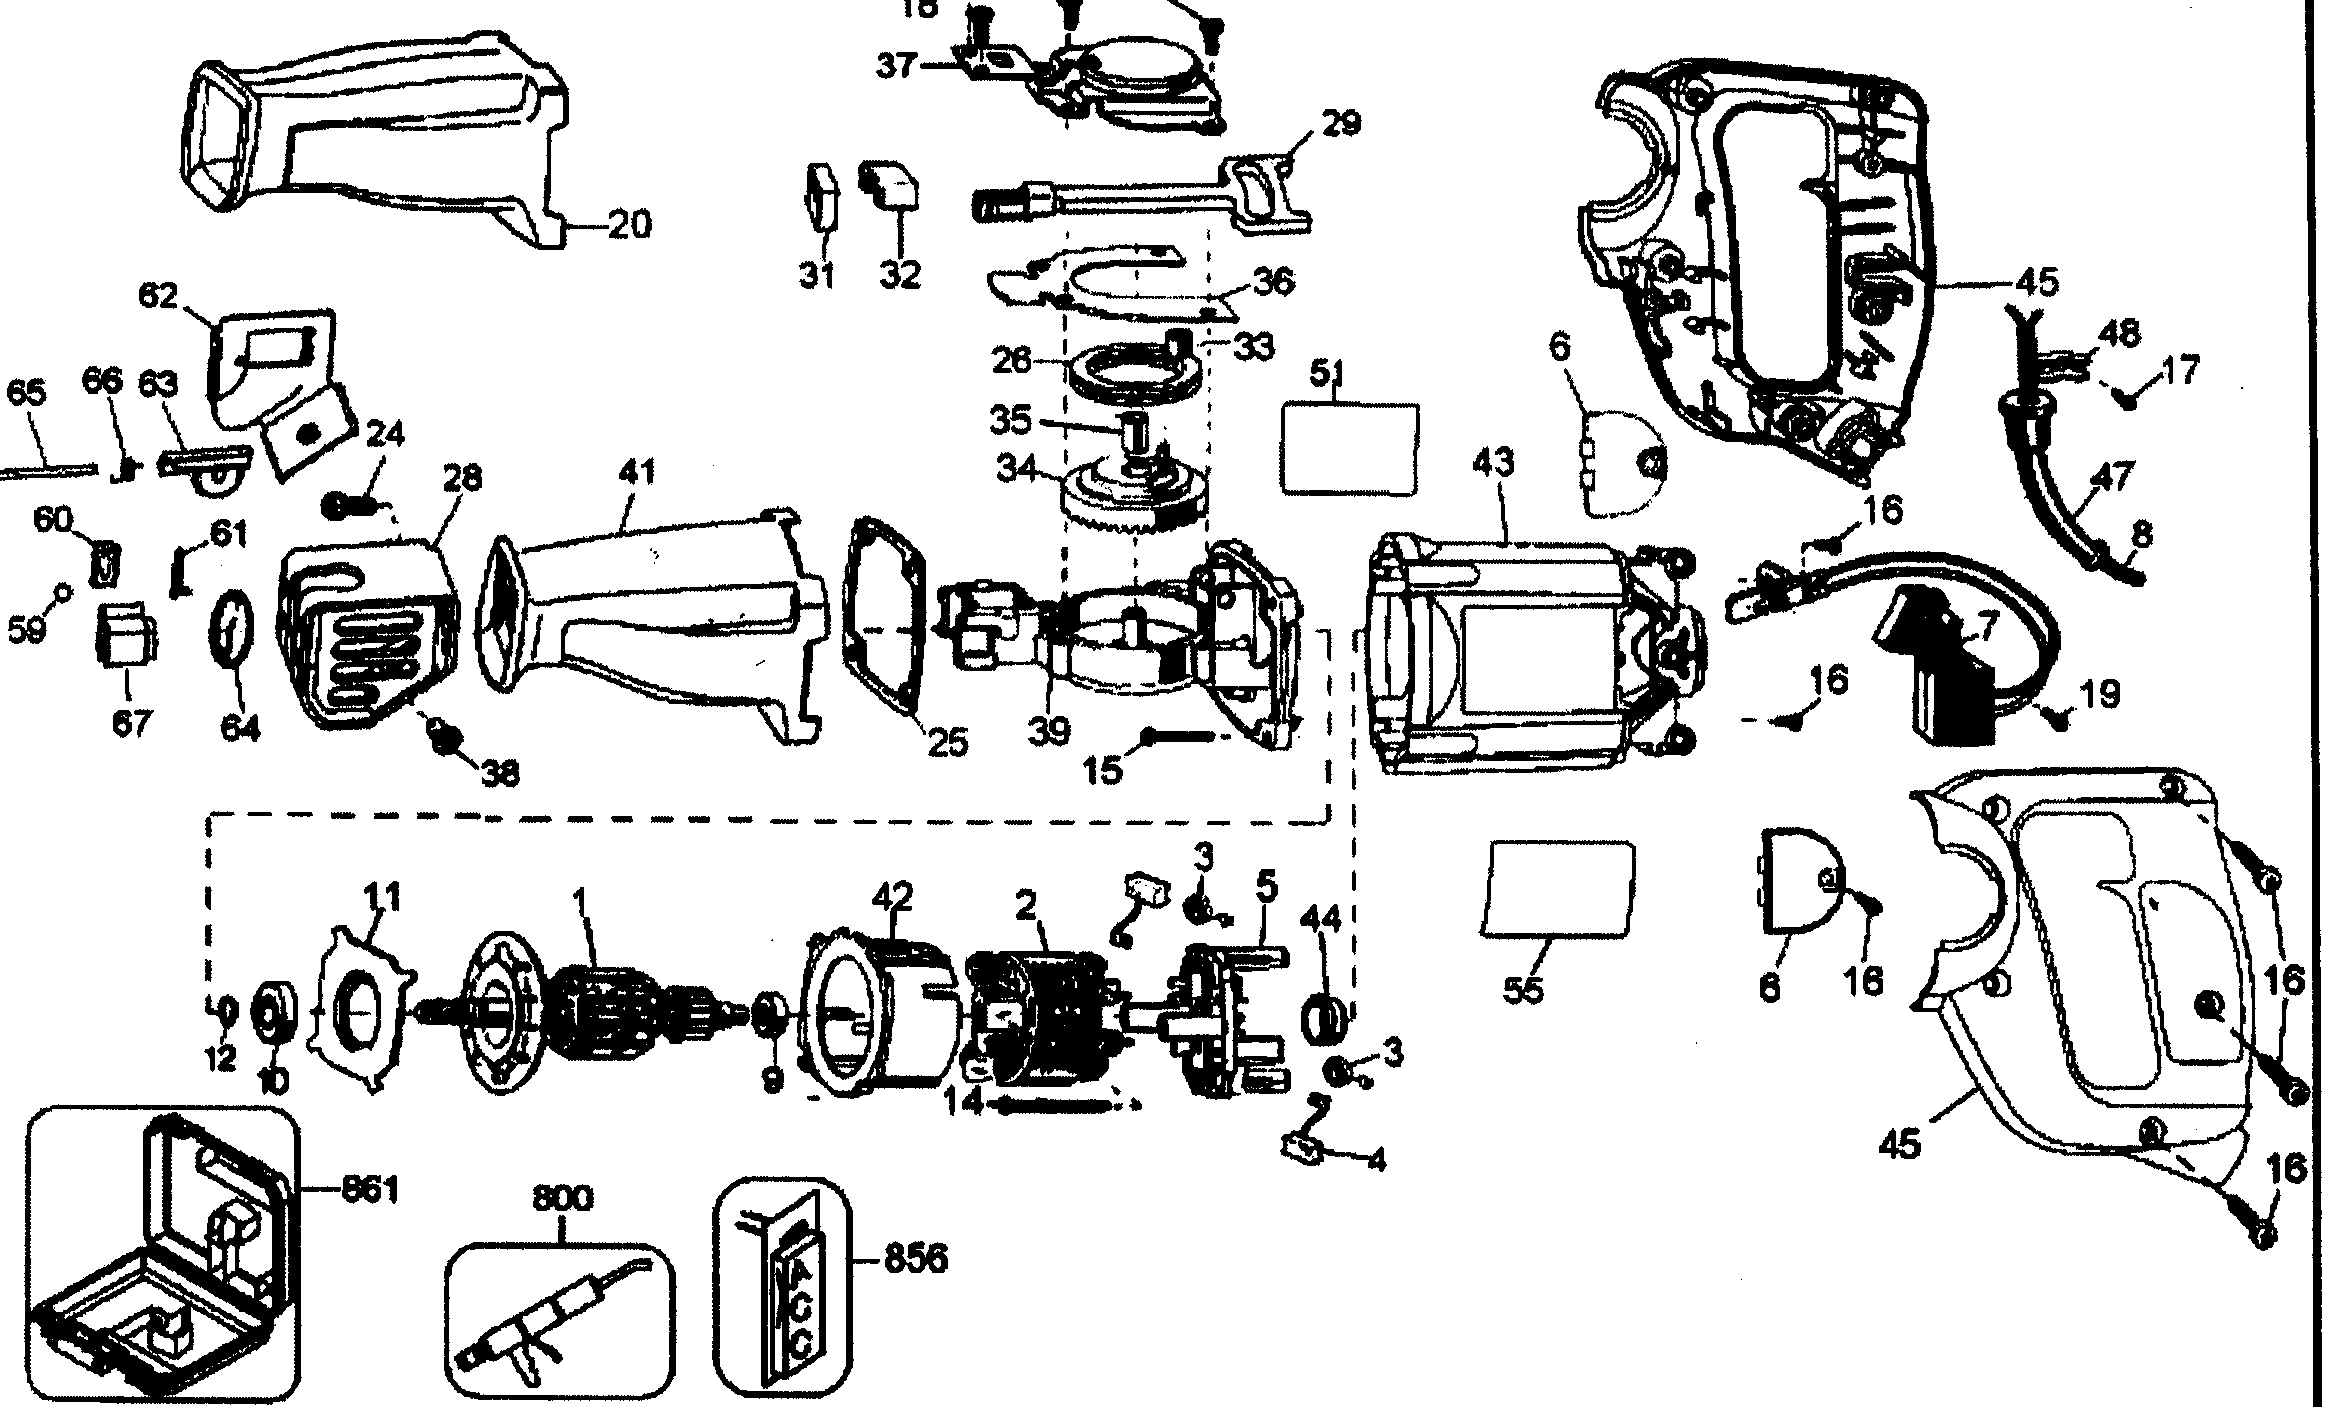 [ZSVE_7041]  Cycle Country Winch Switch Wiring Diagram Diagram Base Website Wiring  Diagram - STREAMDIAGRAM.FLORATORINO.IT   Dewalt Wiring Diagram      Diagram Database Site Full Edition - floratorino